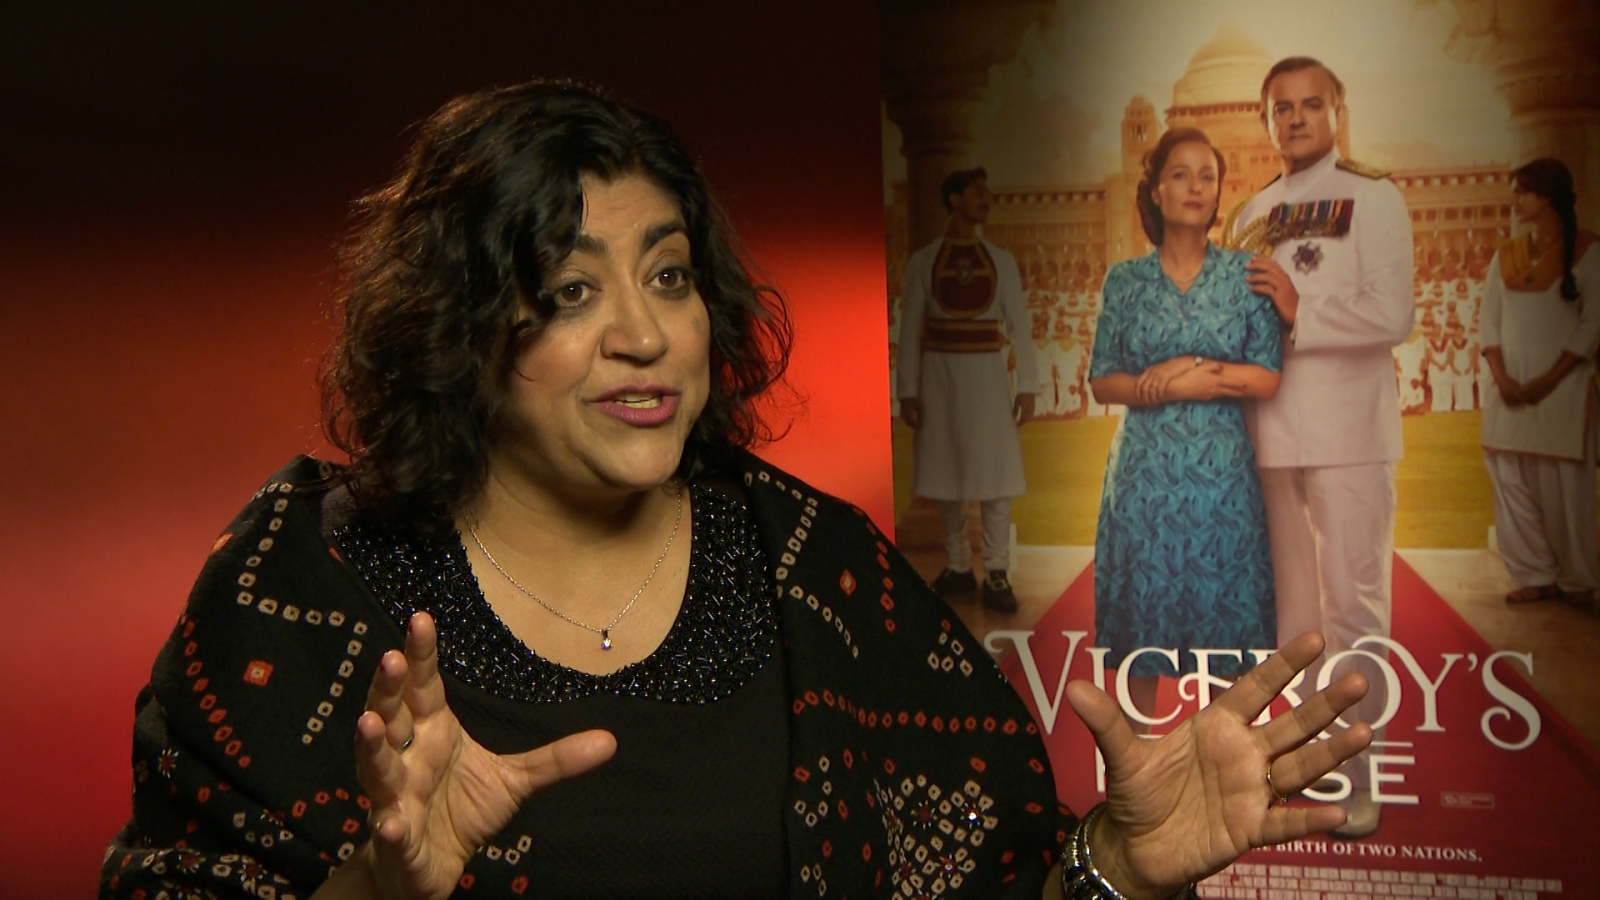 Gurinder Chadha: Politics of division and hate in Viceroy's House resonate today